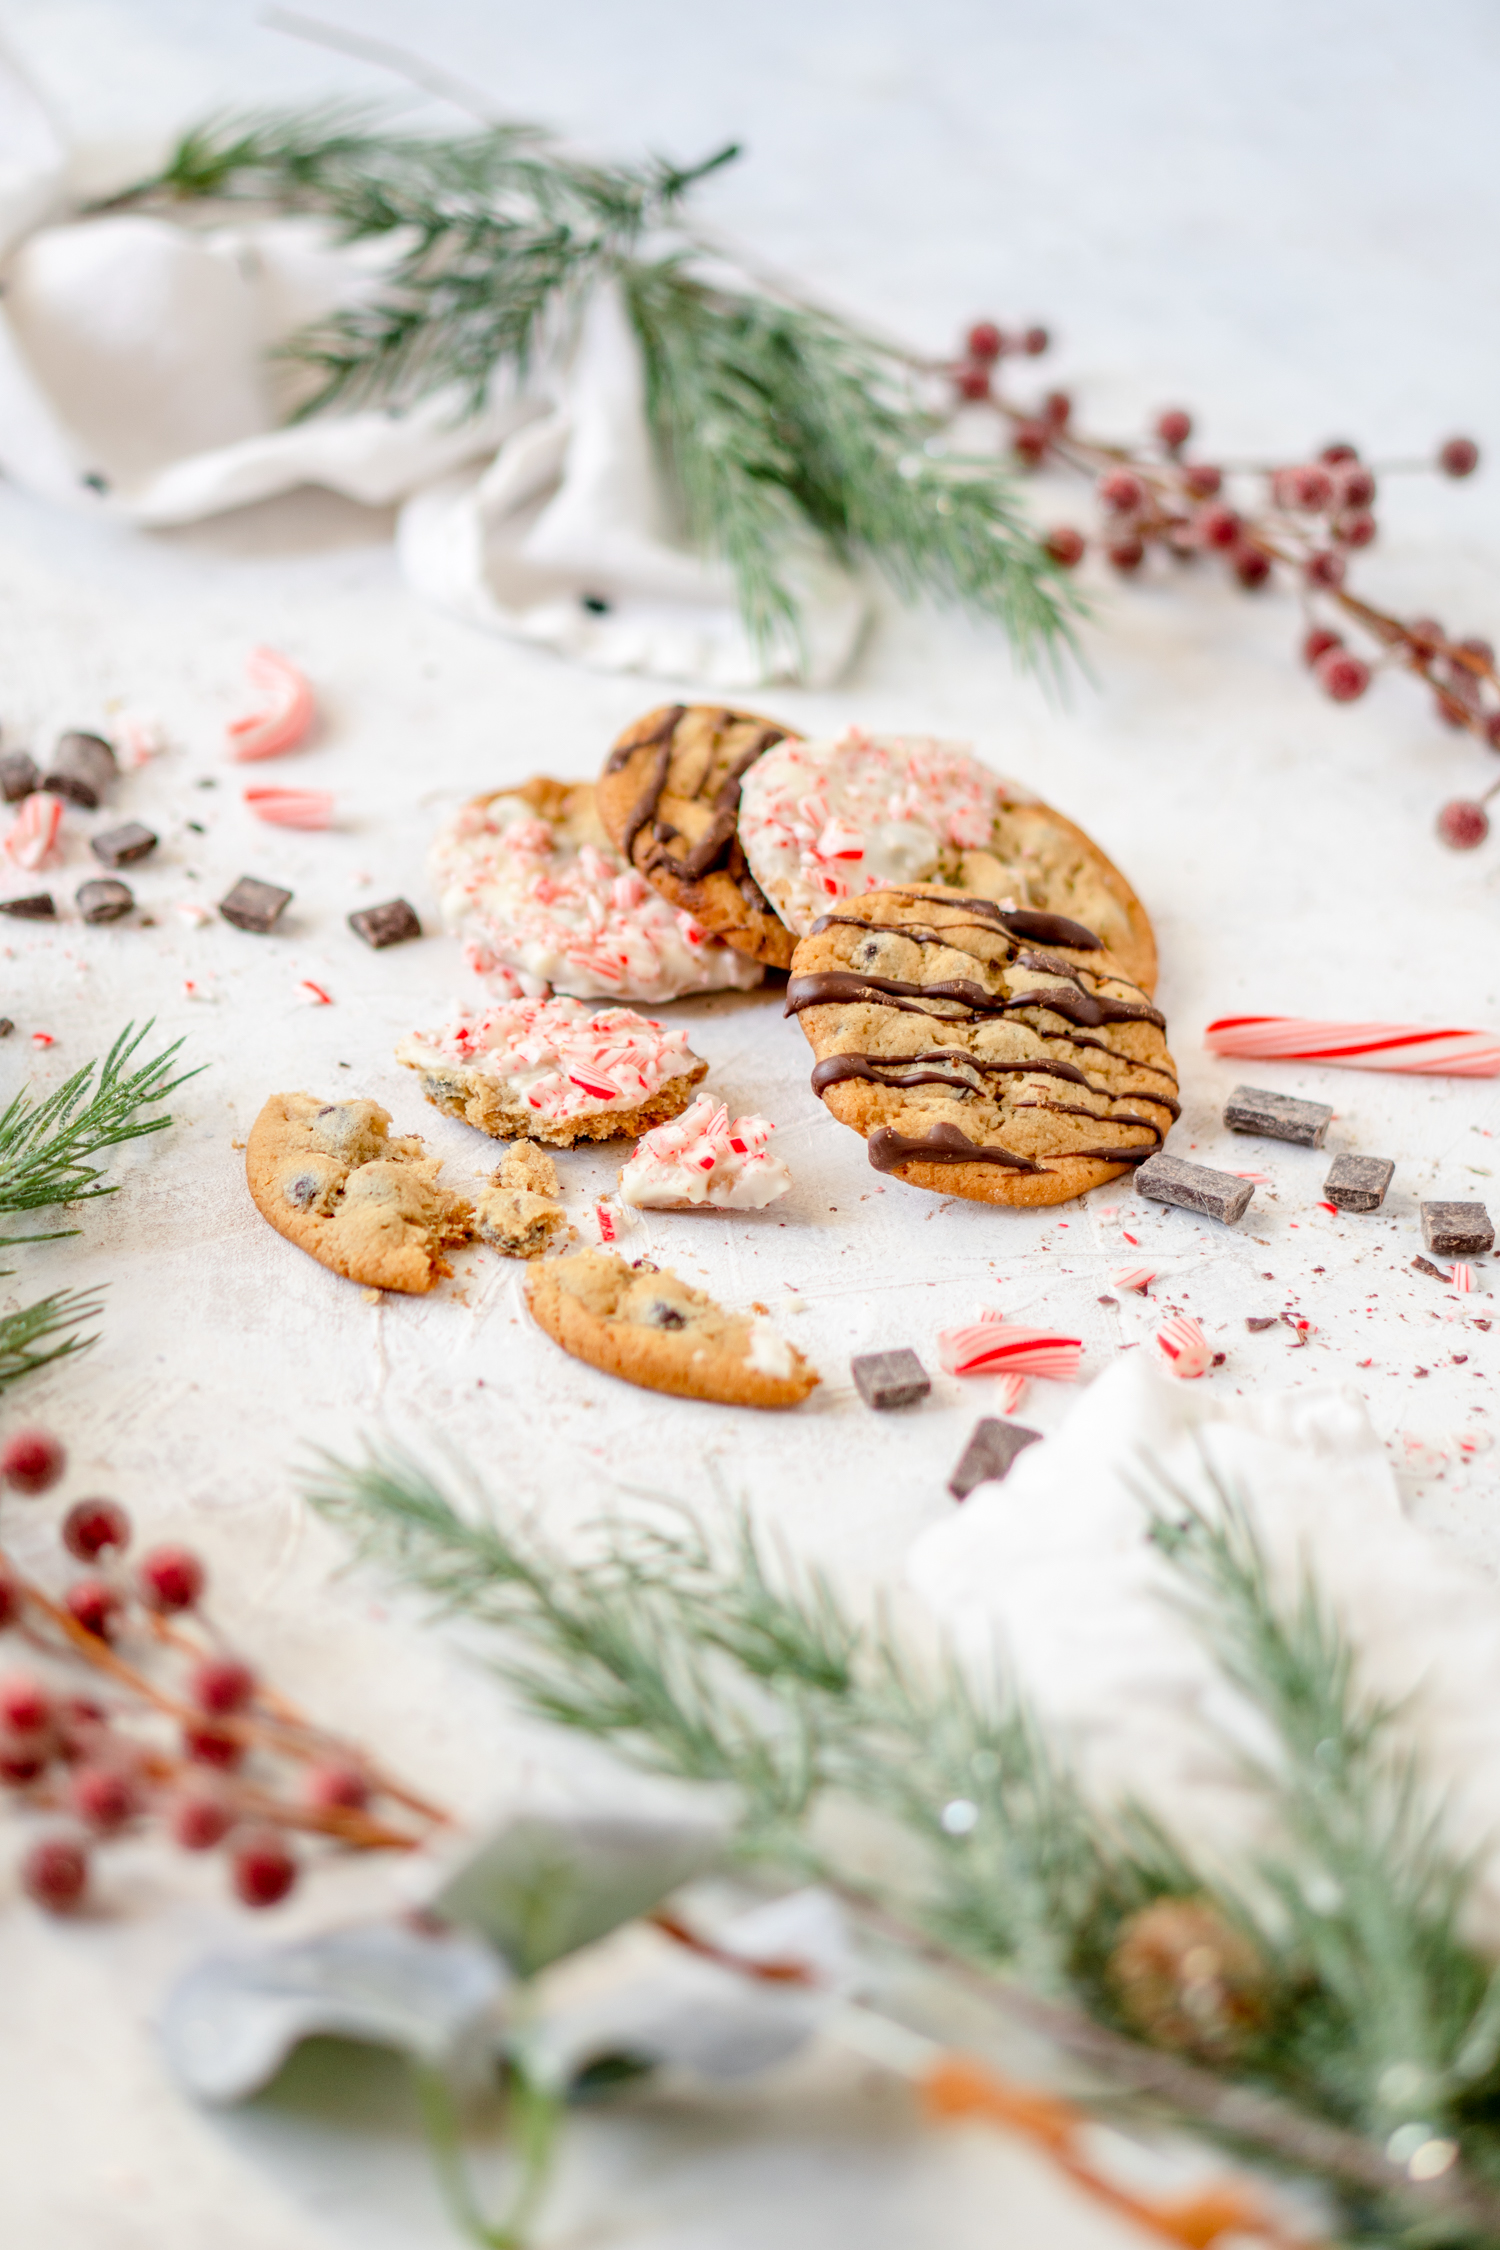 Chocolate chip cookies drizzled and dipped in chocolate with Christmas decorations